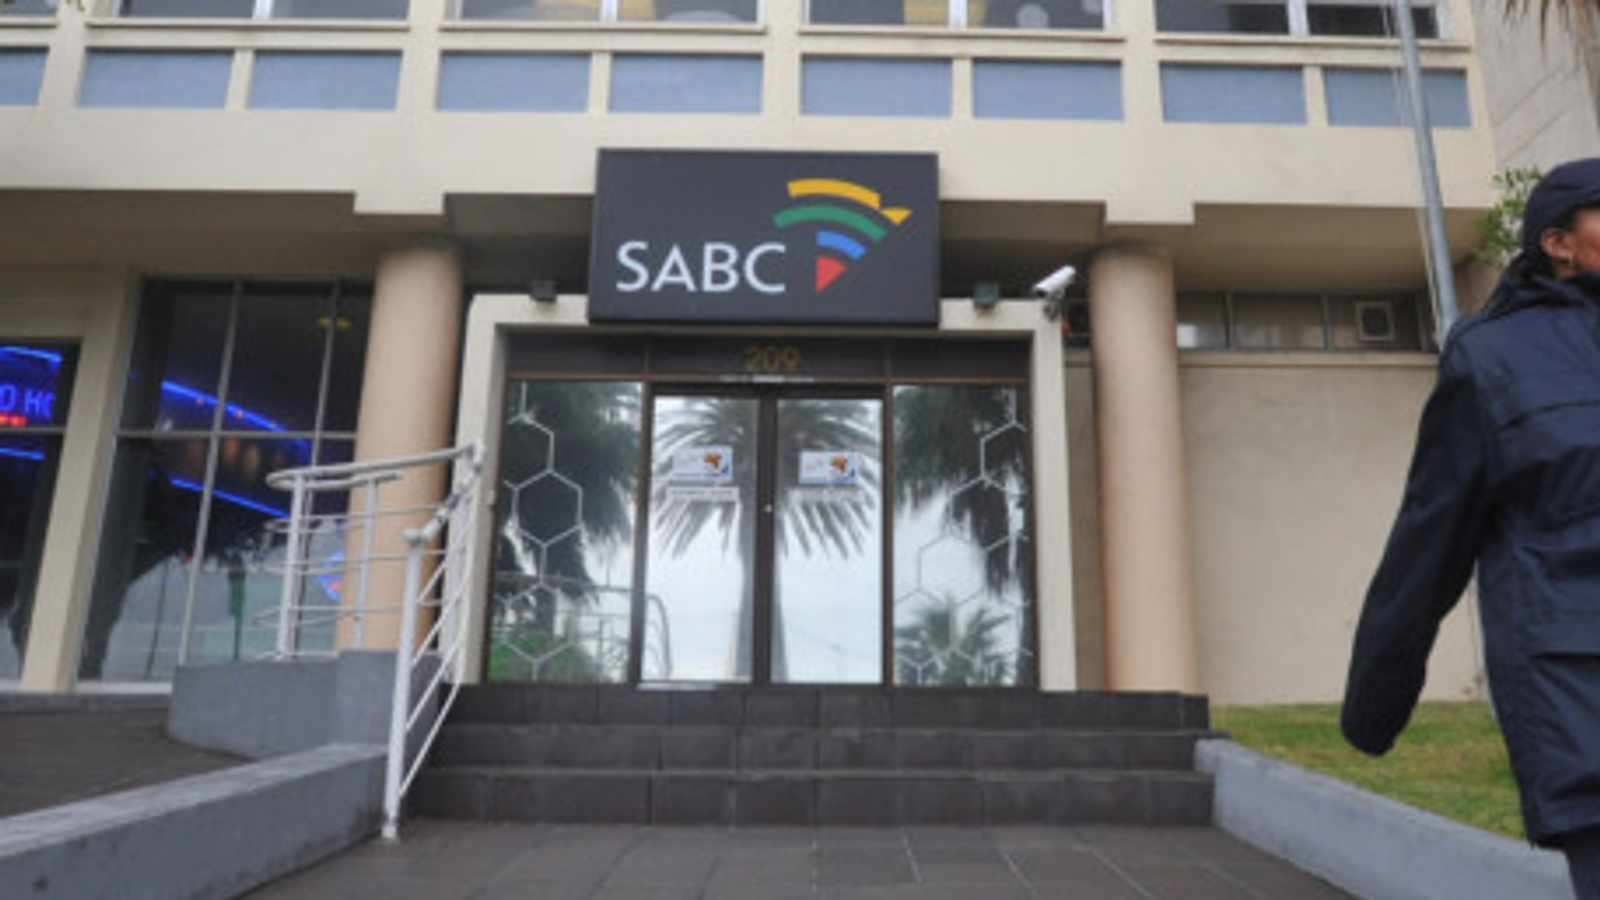 SABC building in Sea Point closed after positive Covid-19 case